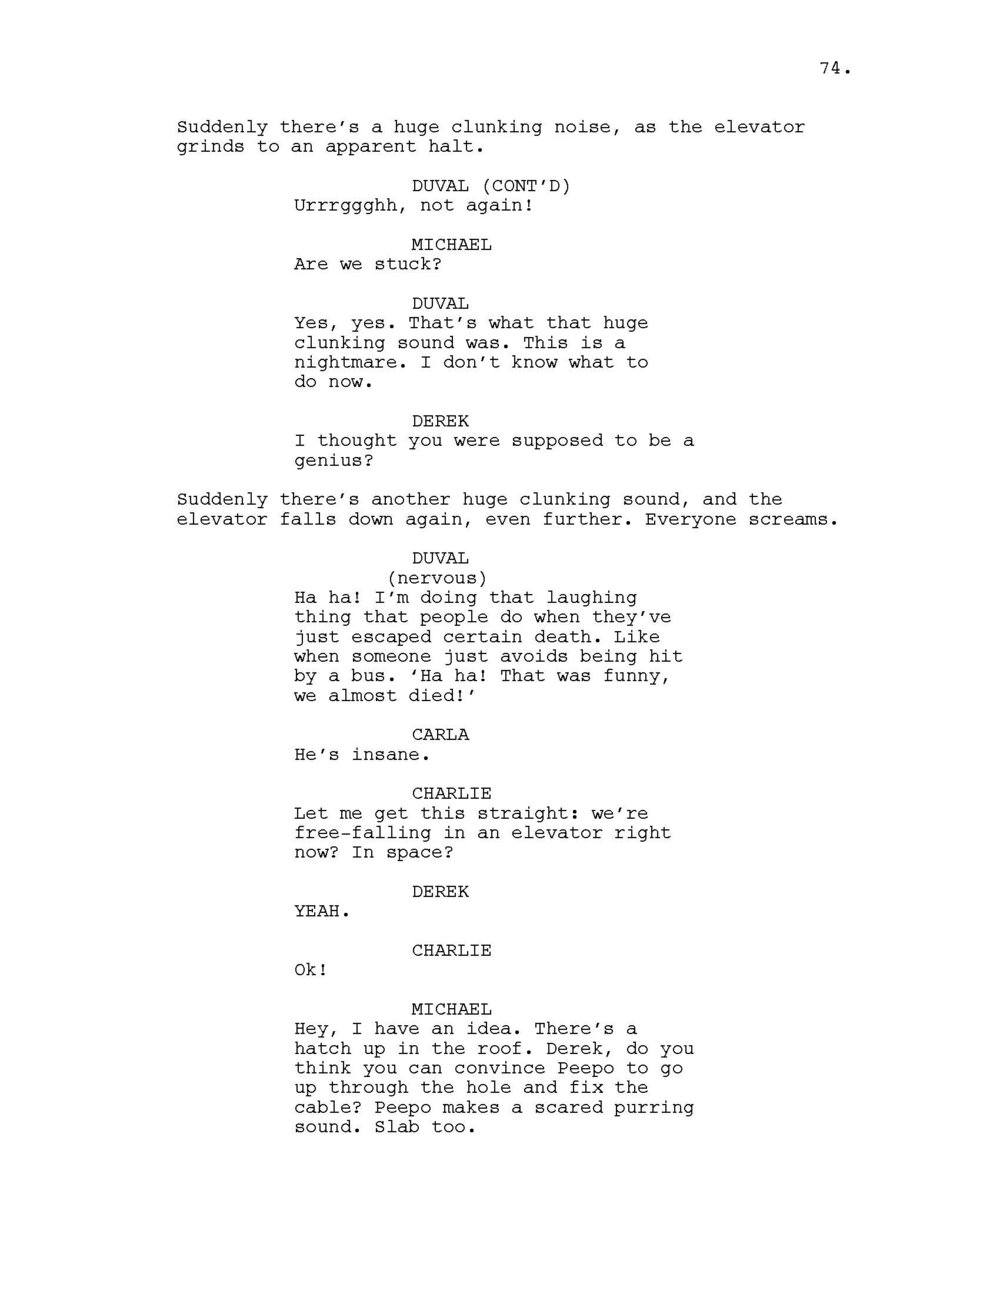 INVISIBLE WORLD SCRIPT_Page_075.jpg